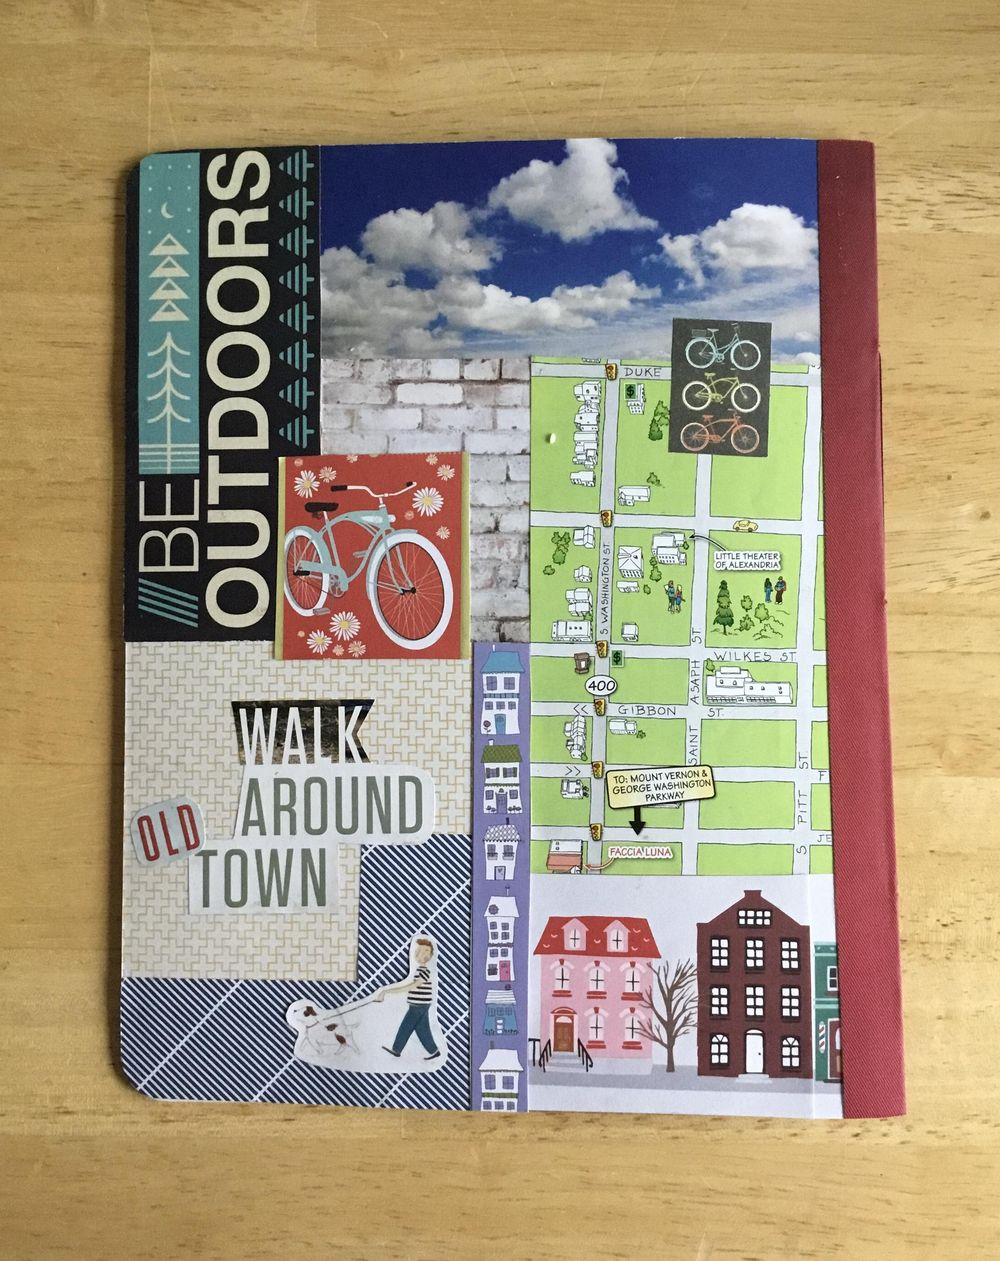 Old Town-Gypsy Journal - image 2 - student project